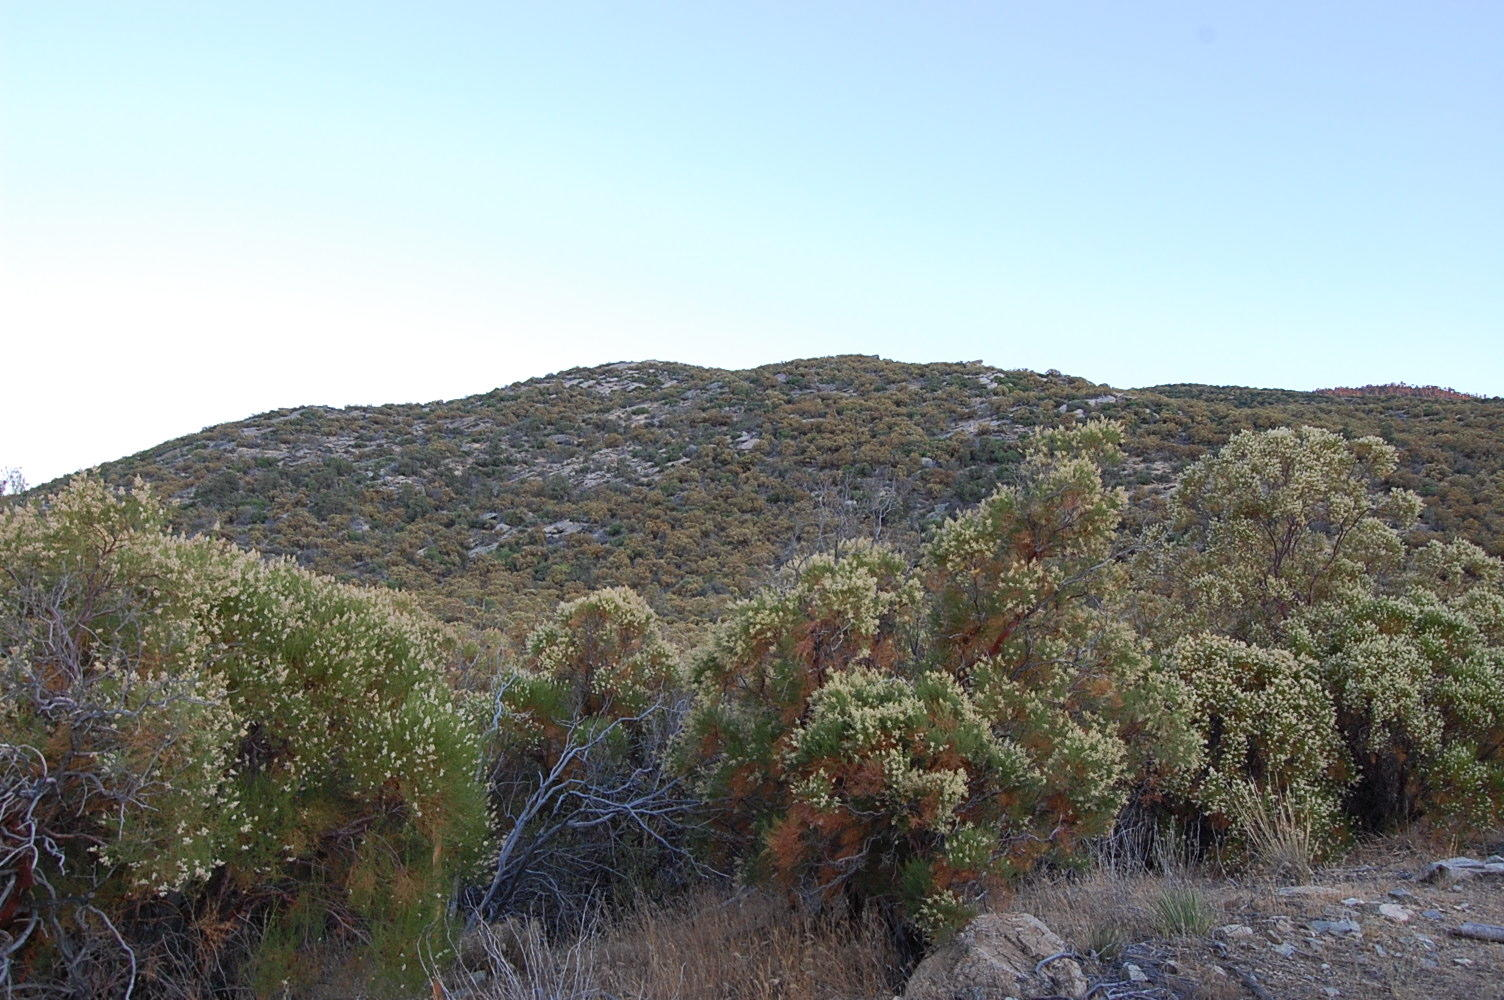 Magnificent 1 Acre Escape 45 minutes from Palm Springs - Image 2